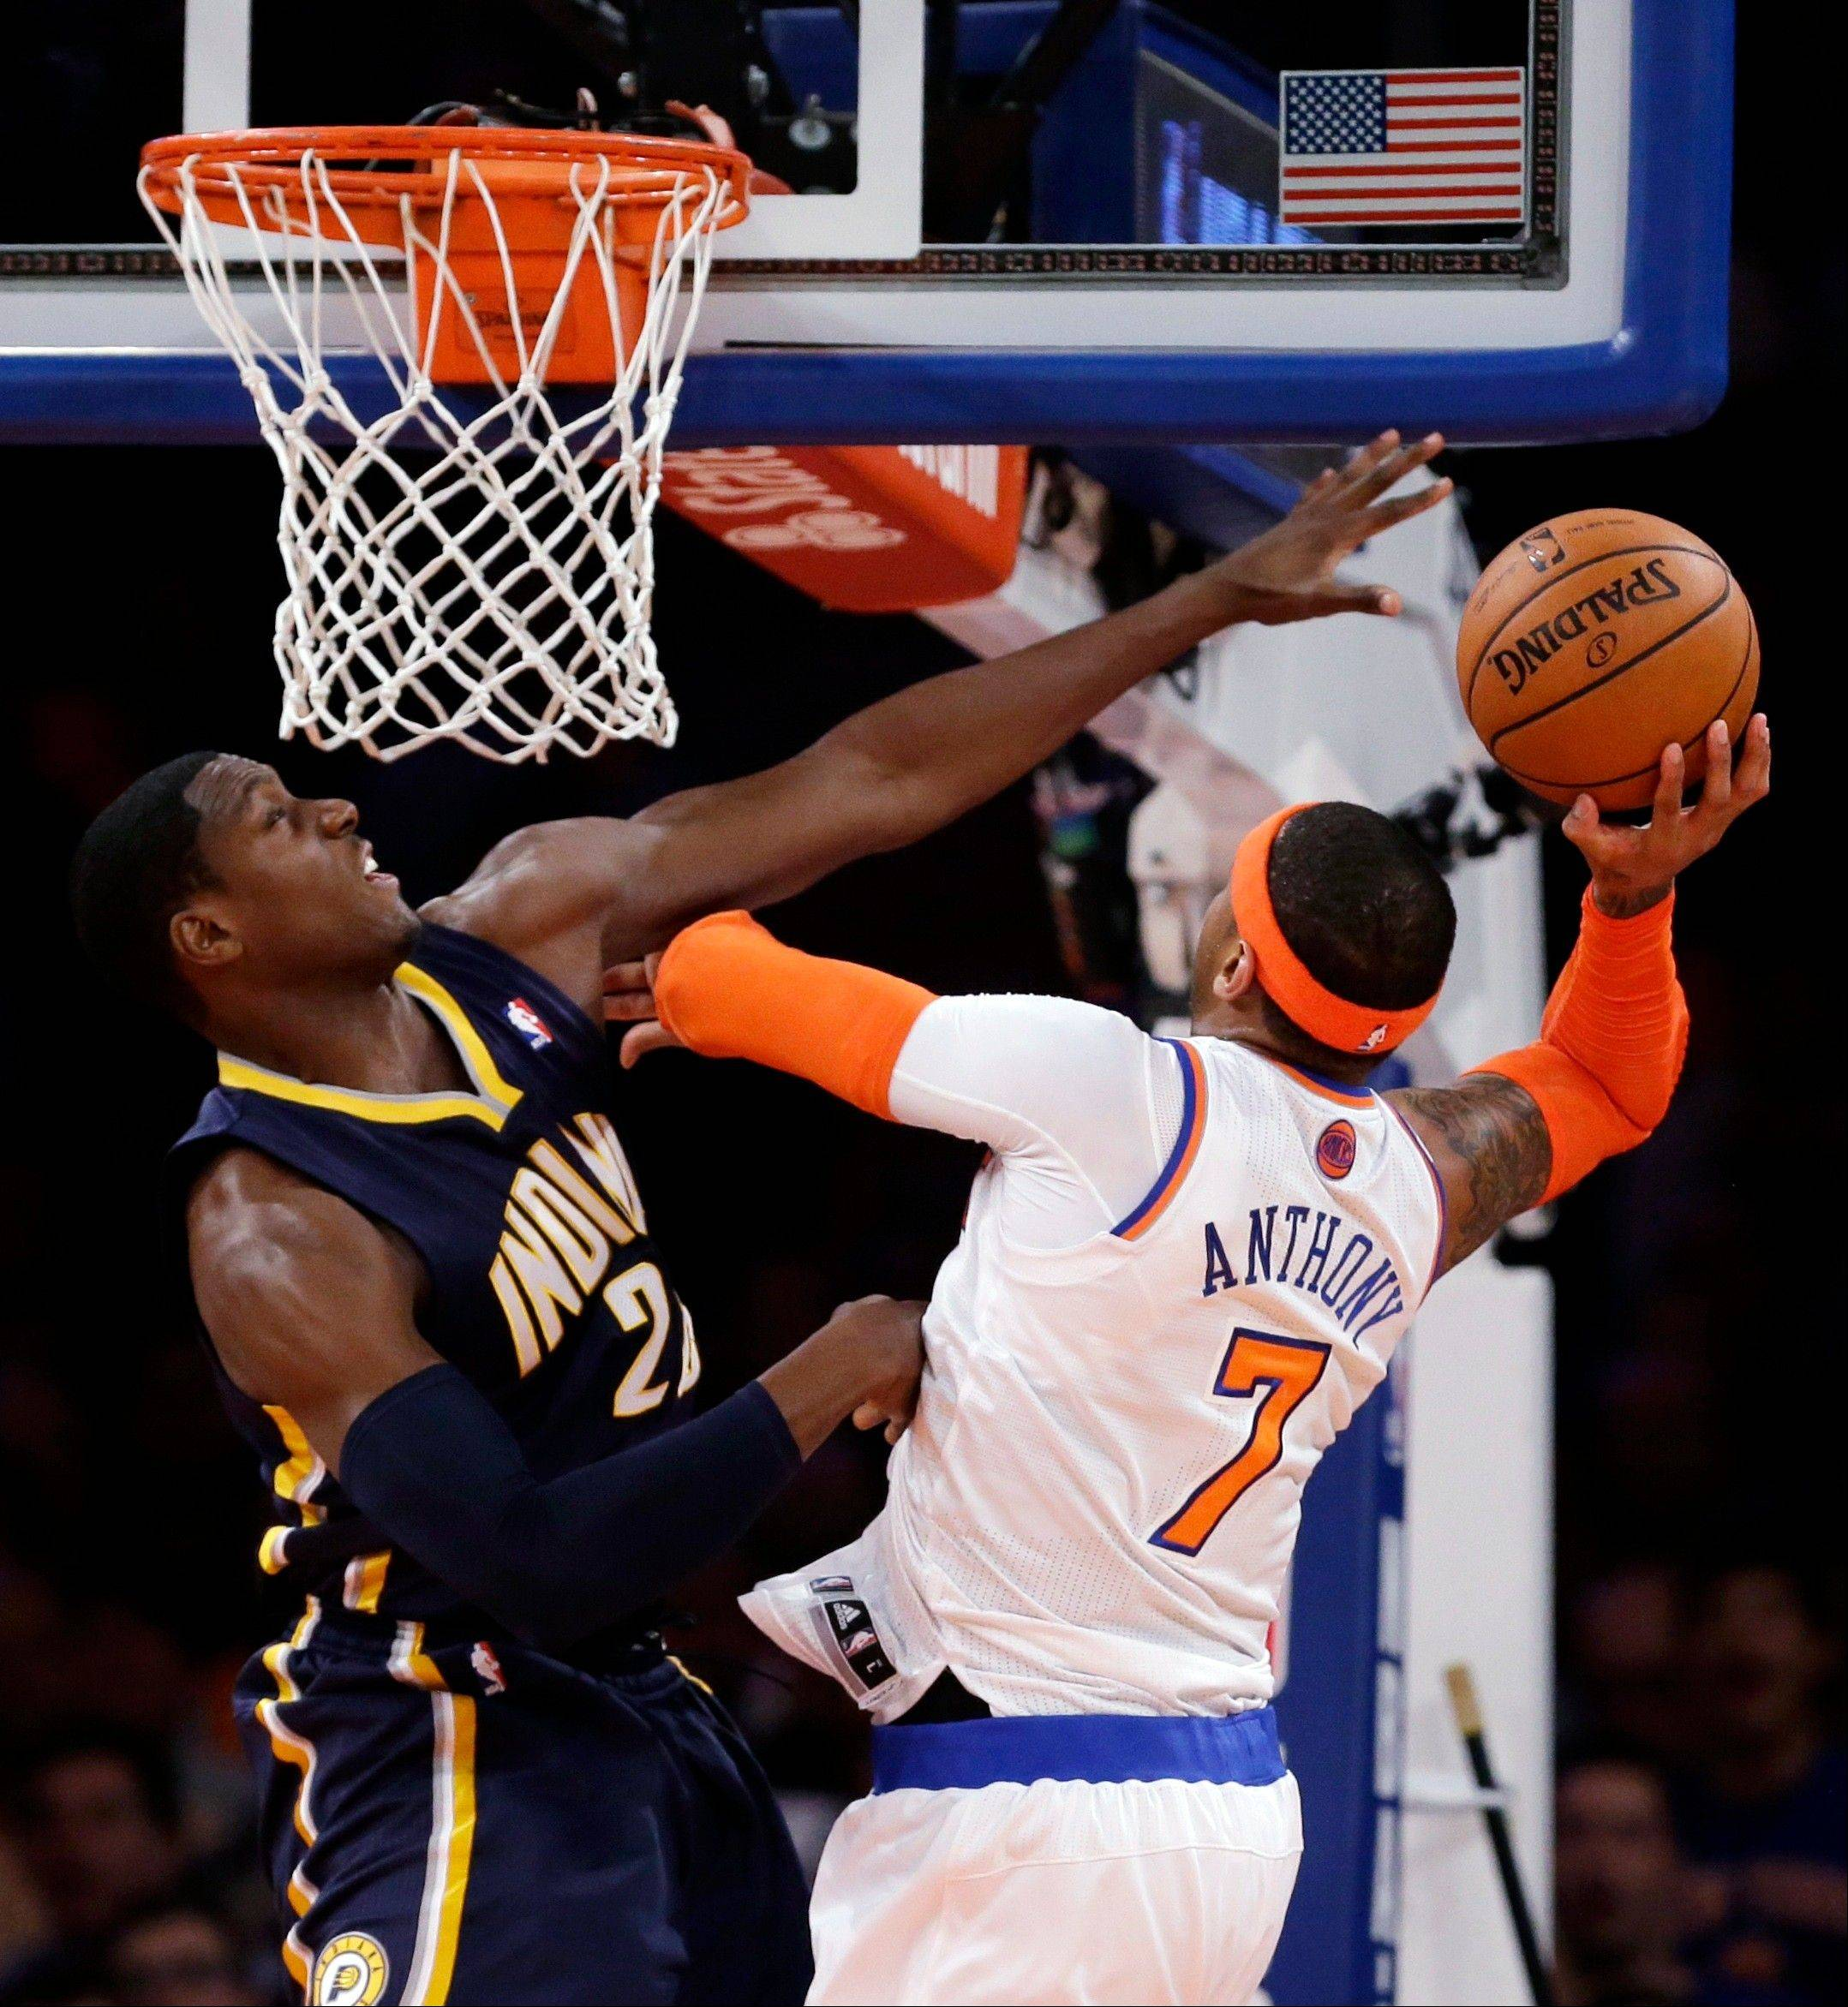 New York Knicks' Carmelo Anthony, right, goes up for a shot against Indiana Pacers' Paul George in the first half of Game 5 of an Eastern Conference semifinal in the NBA basketball playoffs, at Madison Square Garden in New York, Thursday, May 16, 2013. (AP Photo/Julio Cortez)